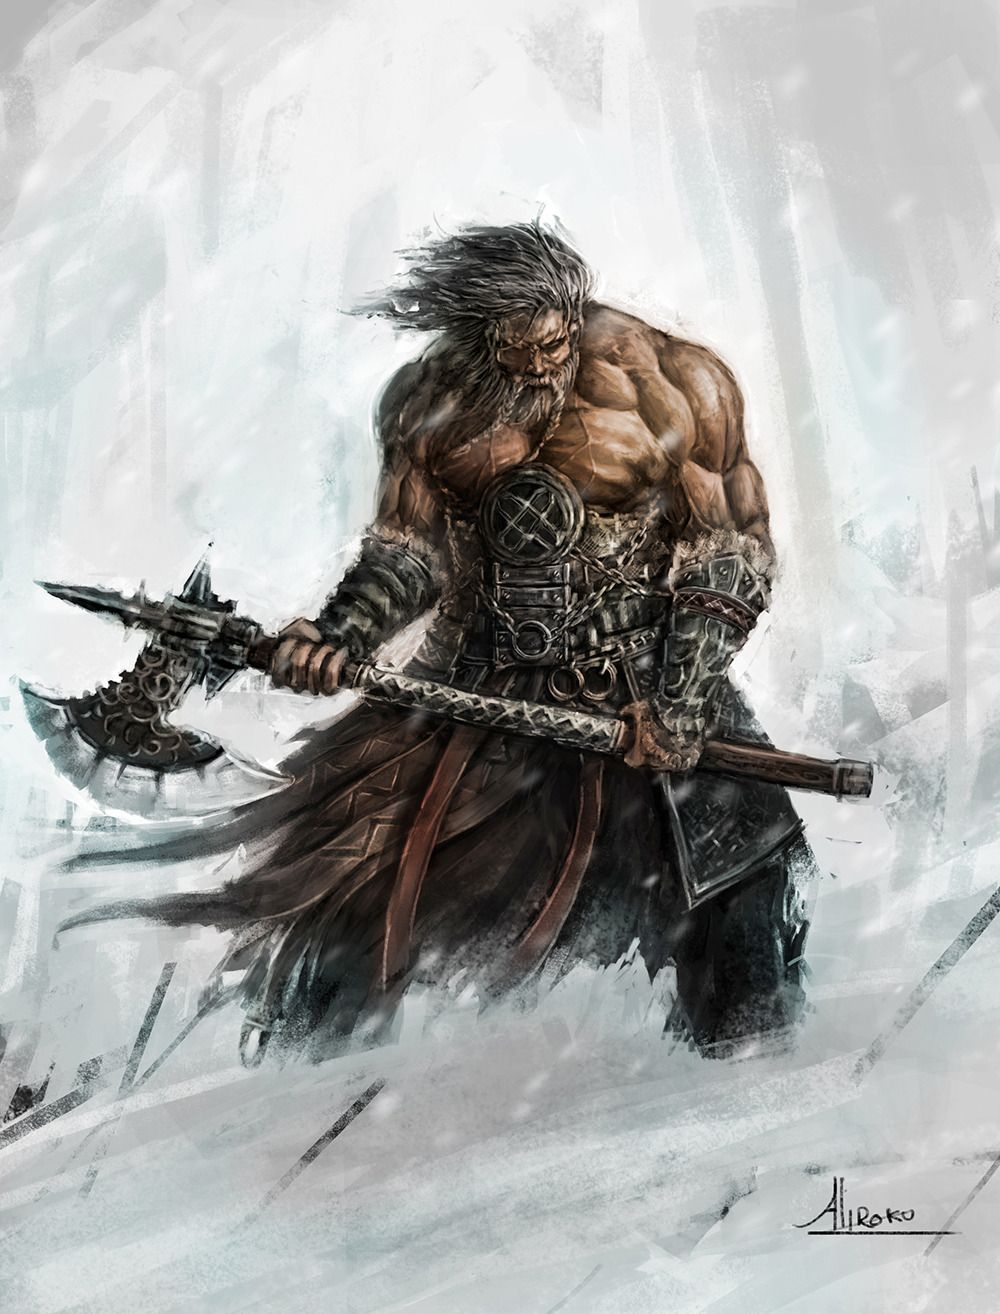 Barbarian Overcomes The Worst Of Winter Character Art